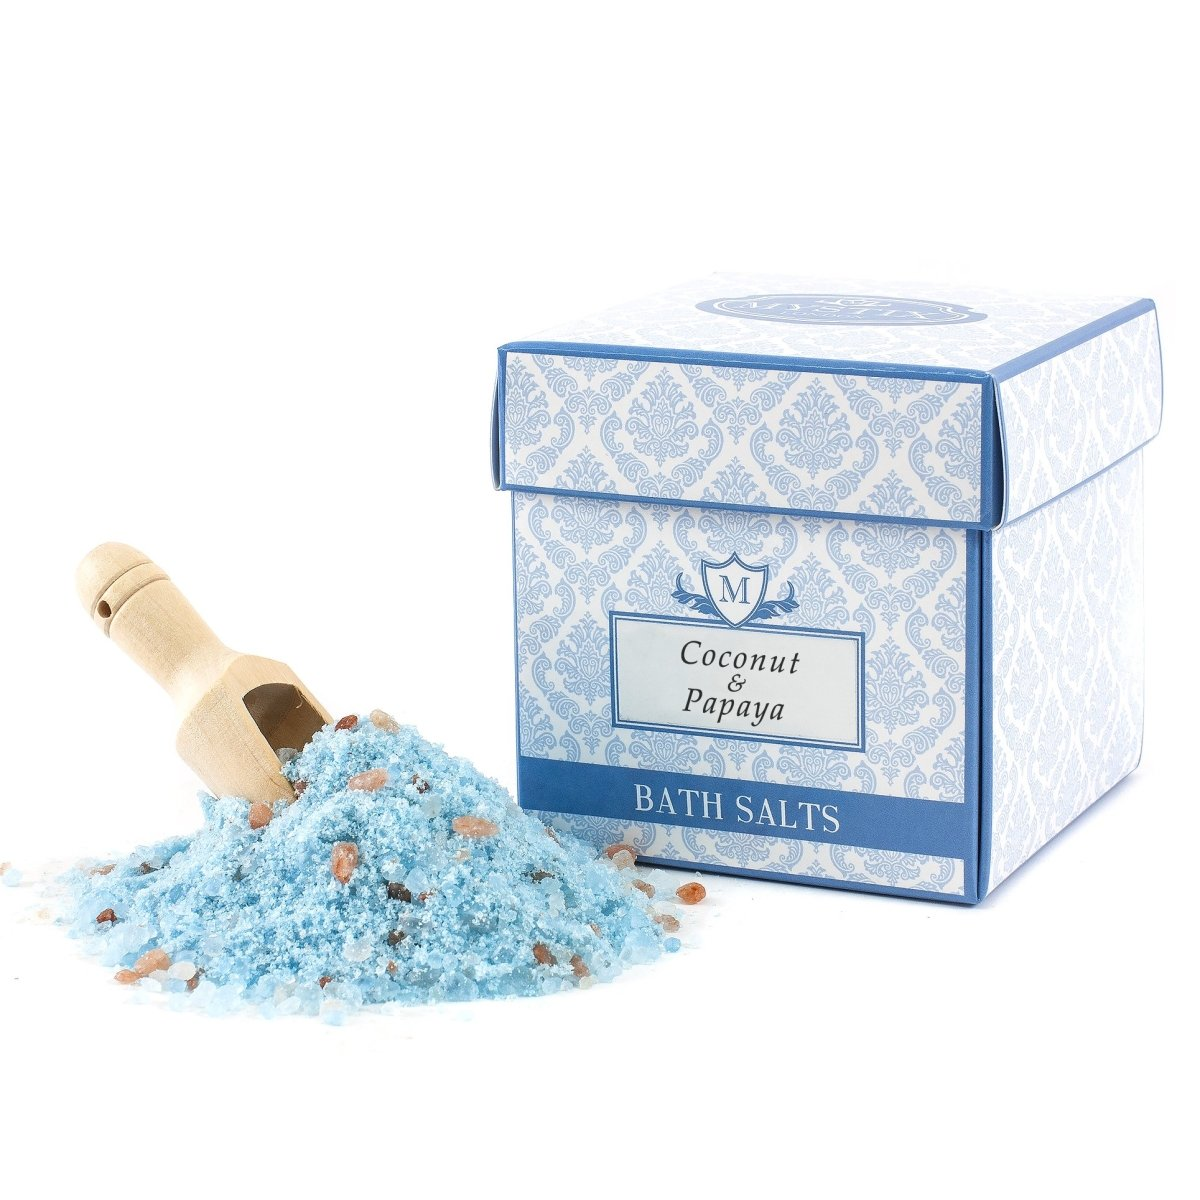 Coconut & Papaya Scented Bath Salt 350g - Mystic Moments UK